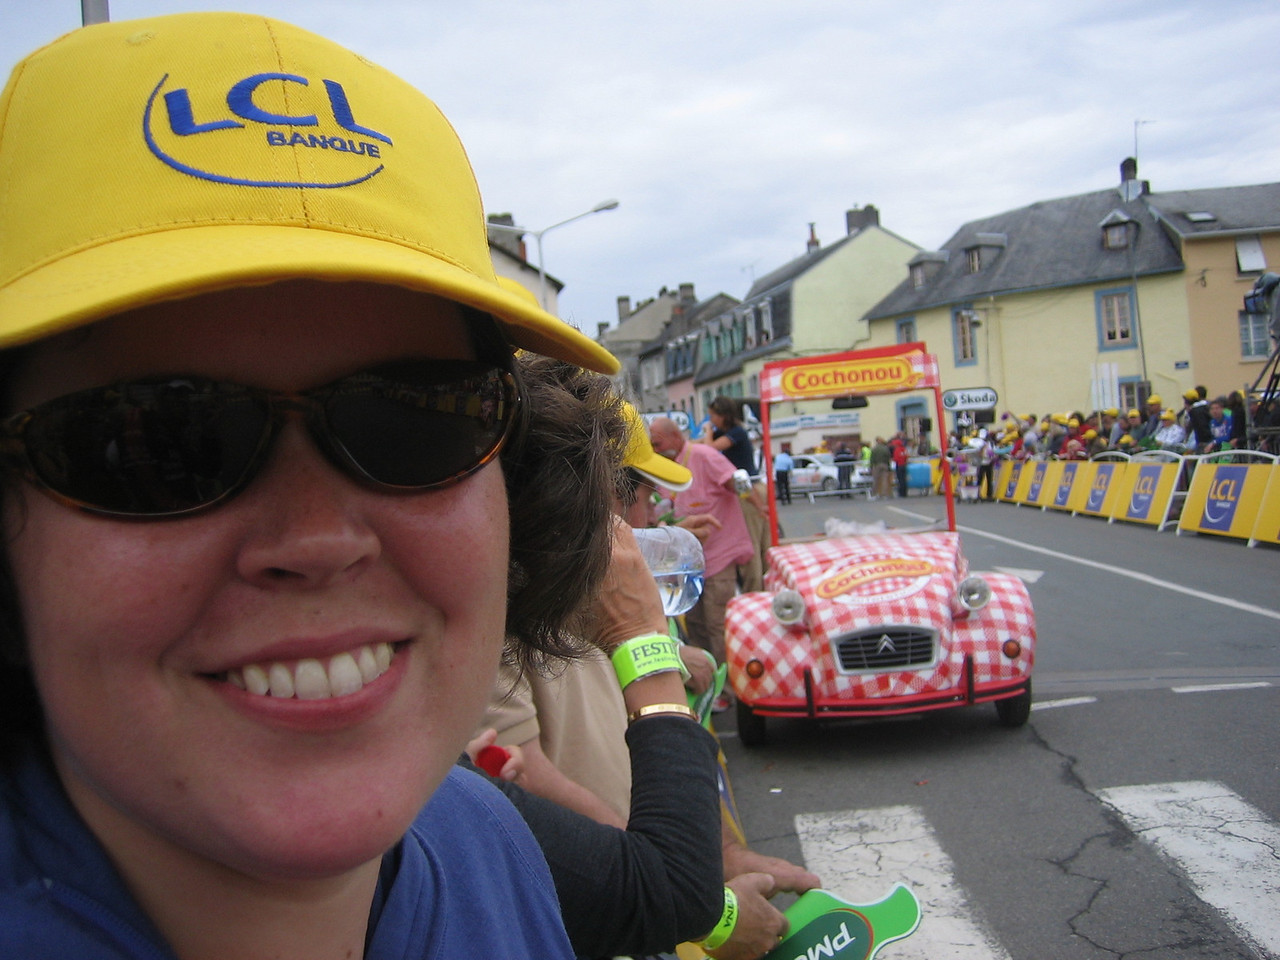 Katie, styling her new LCL hat. It's a bit of a competition between sponsors to get as many people as possible wearing their hats. Particularly in the sprint section of the finish where there will be lots of cameras.